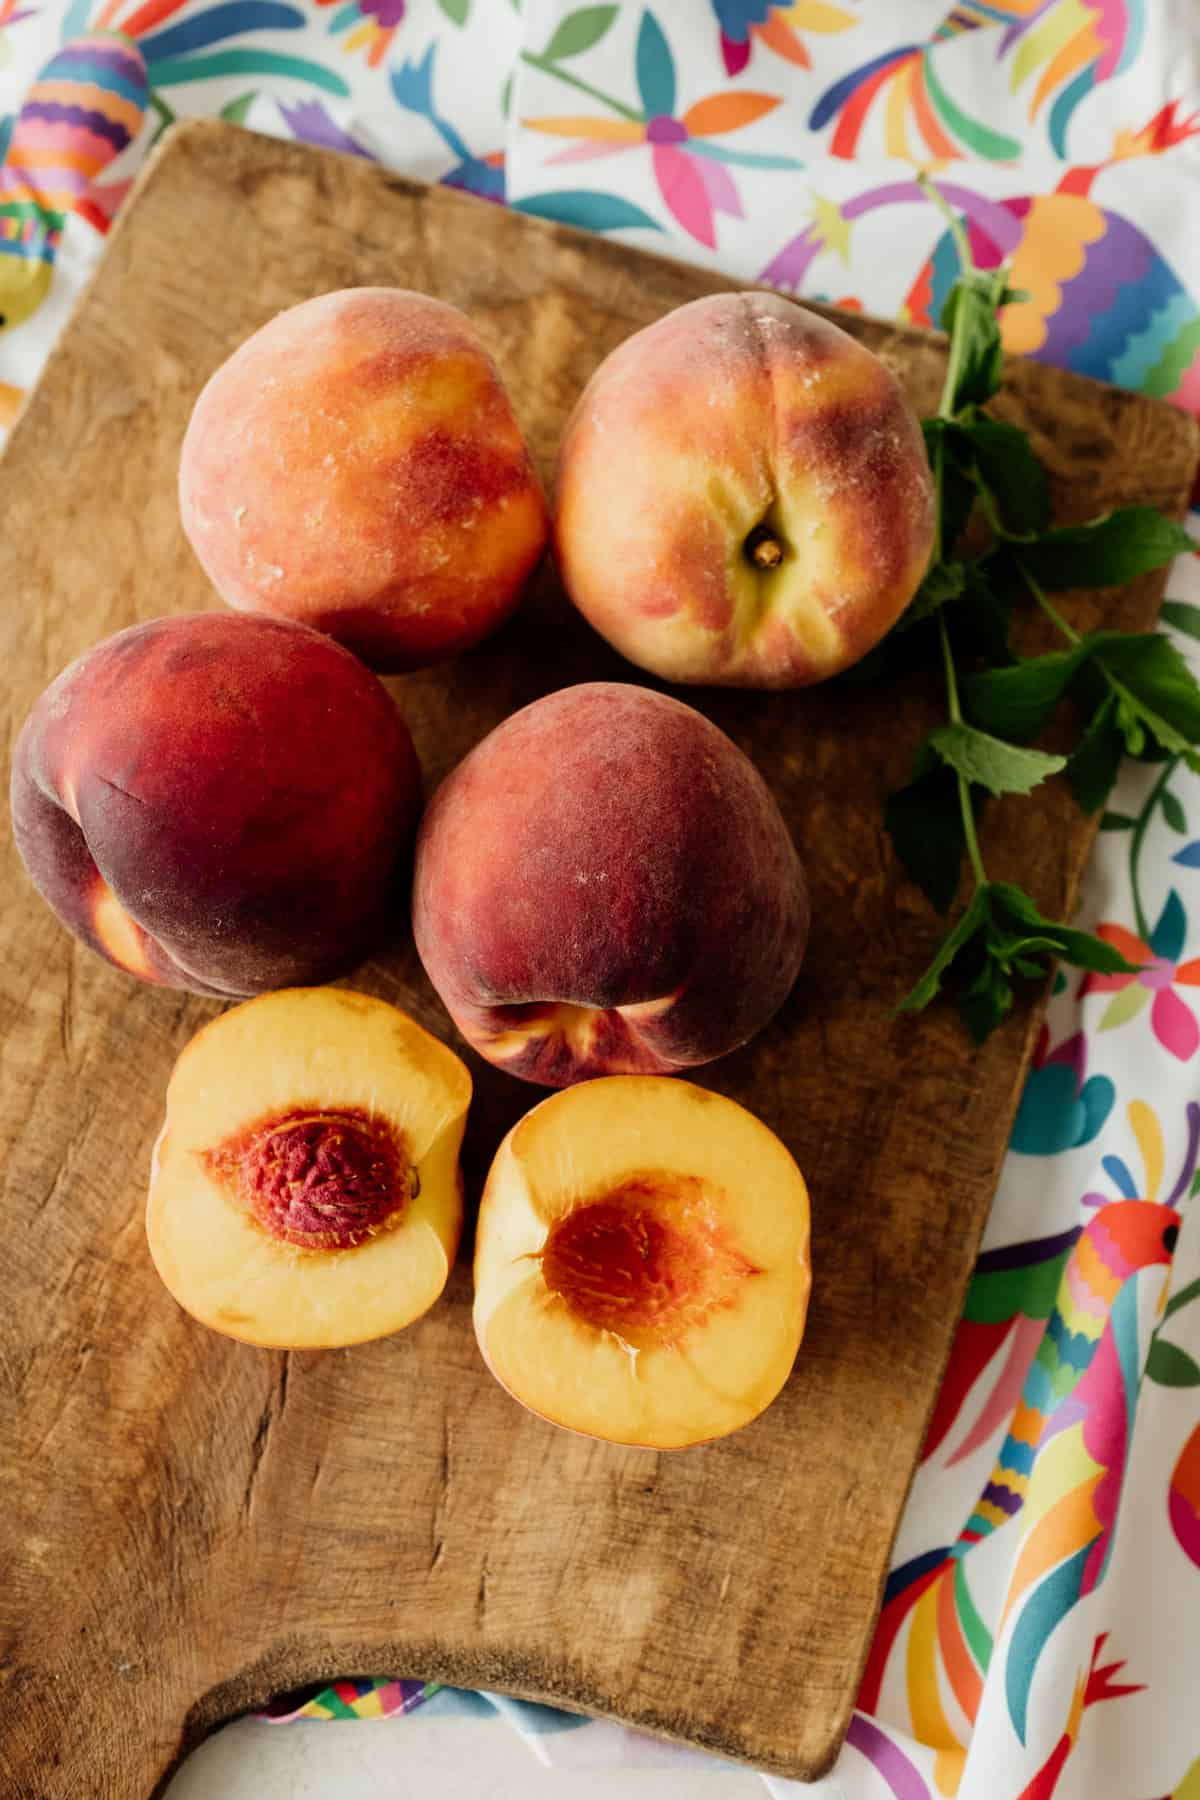 peaches on a wooden board with Otomi fabric below wooden board